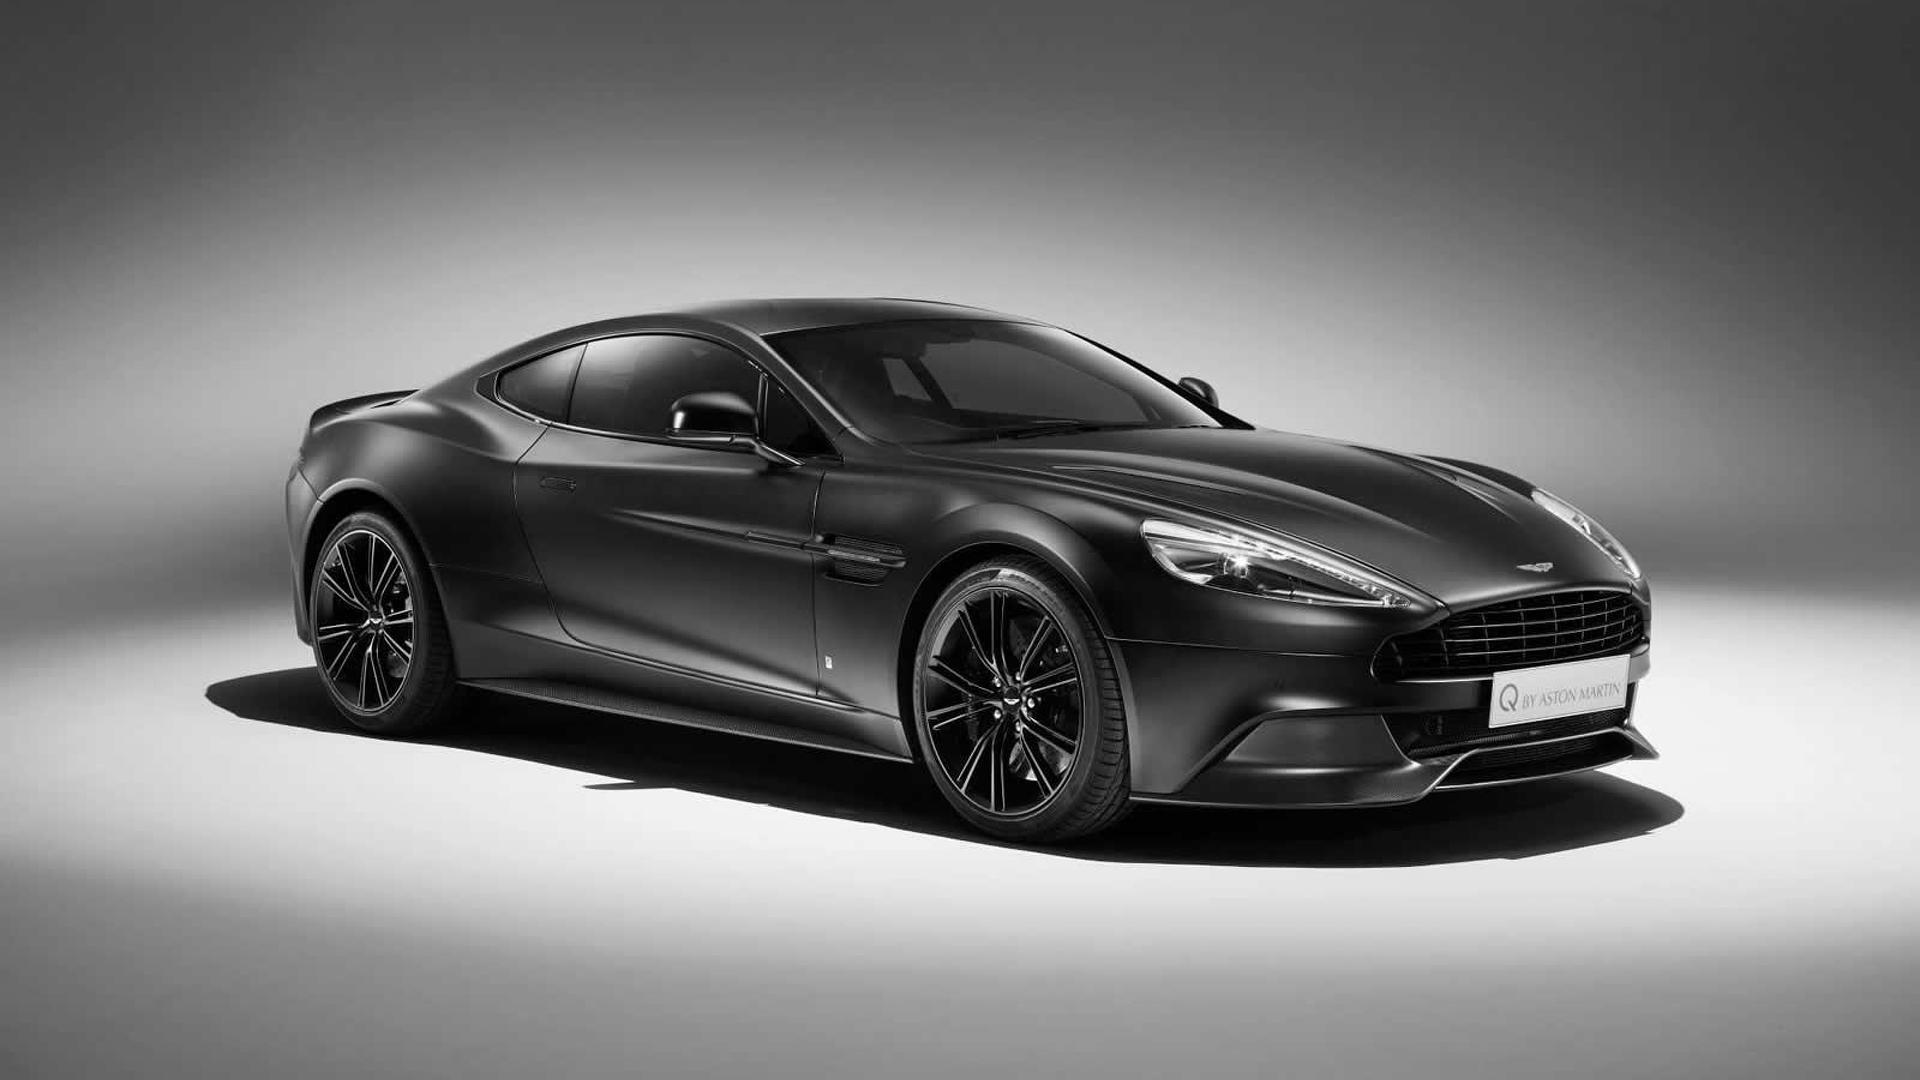 Aston Martin Vantage Vanquish Replacements Coming By 2018